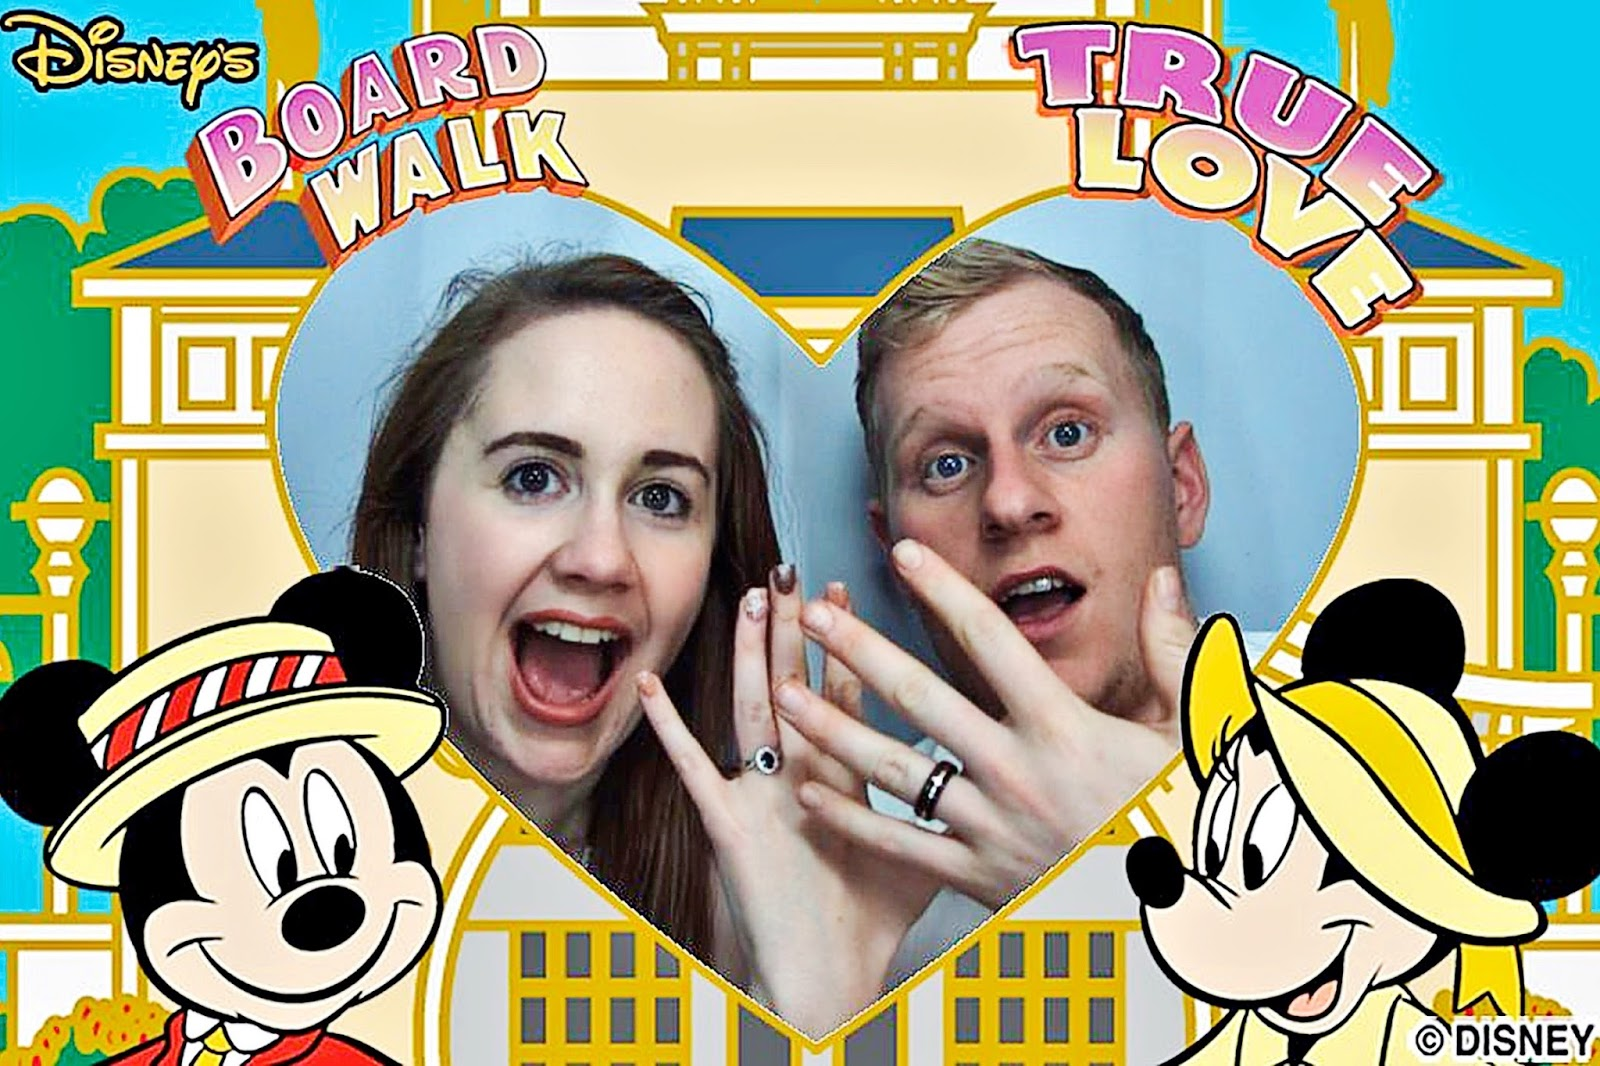 Disney Boardwalk Photo Booth